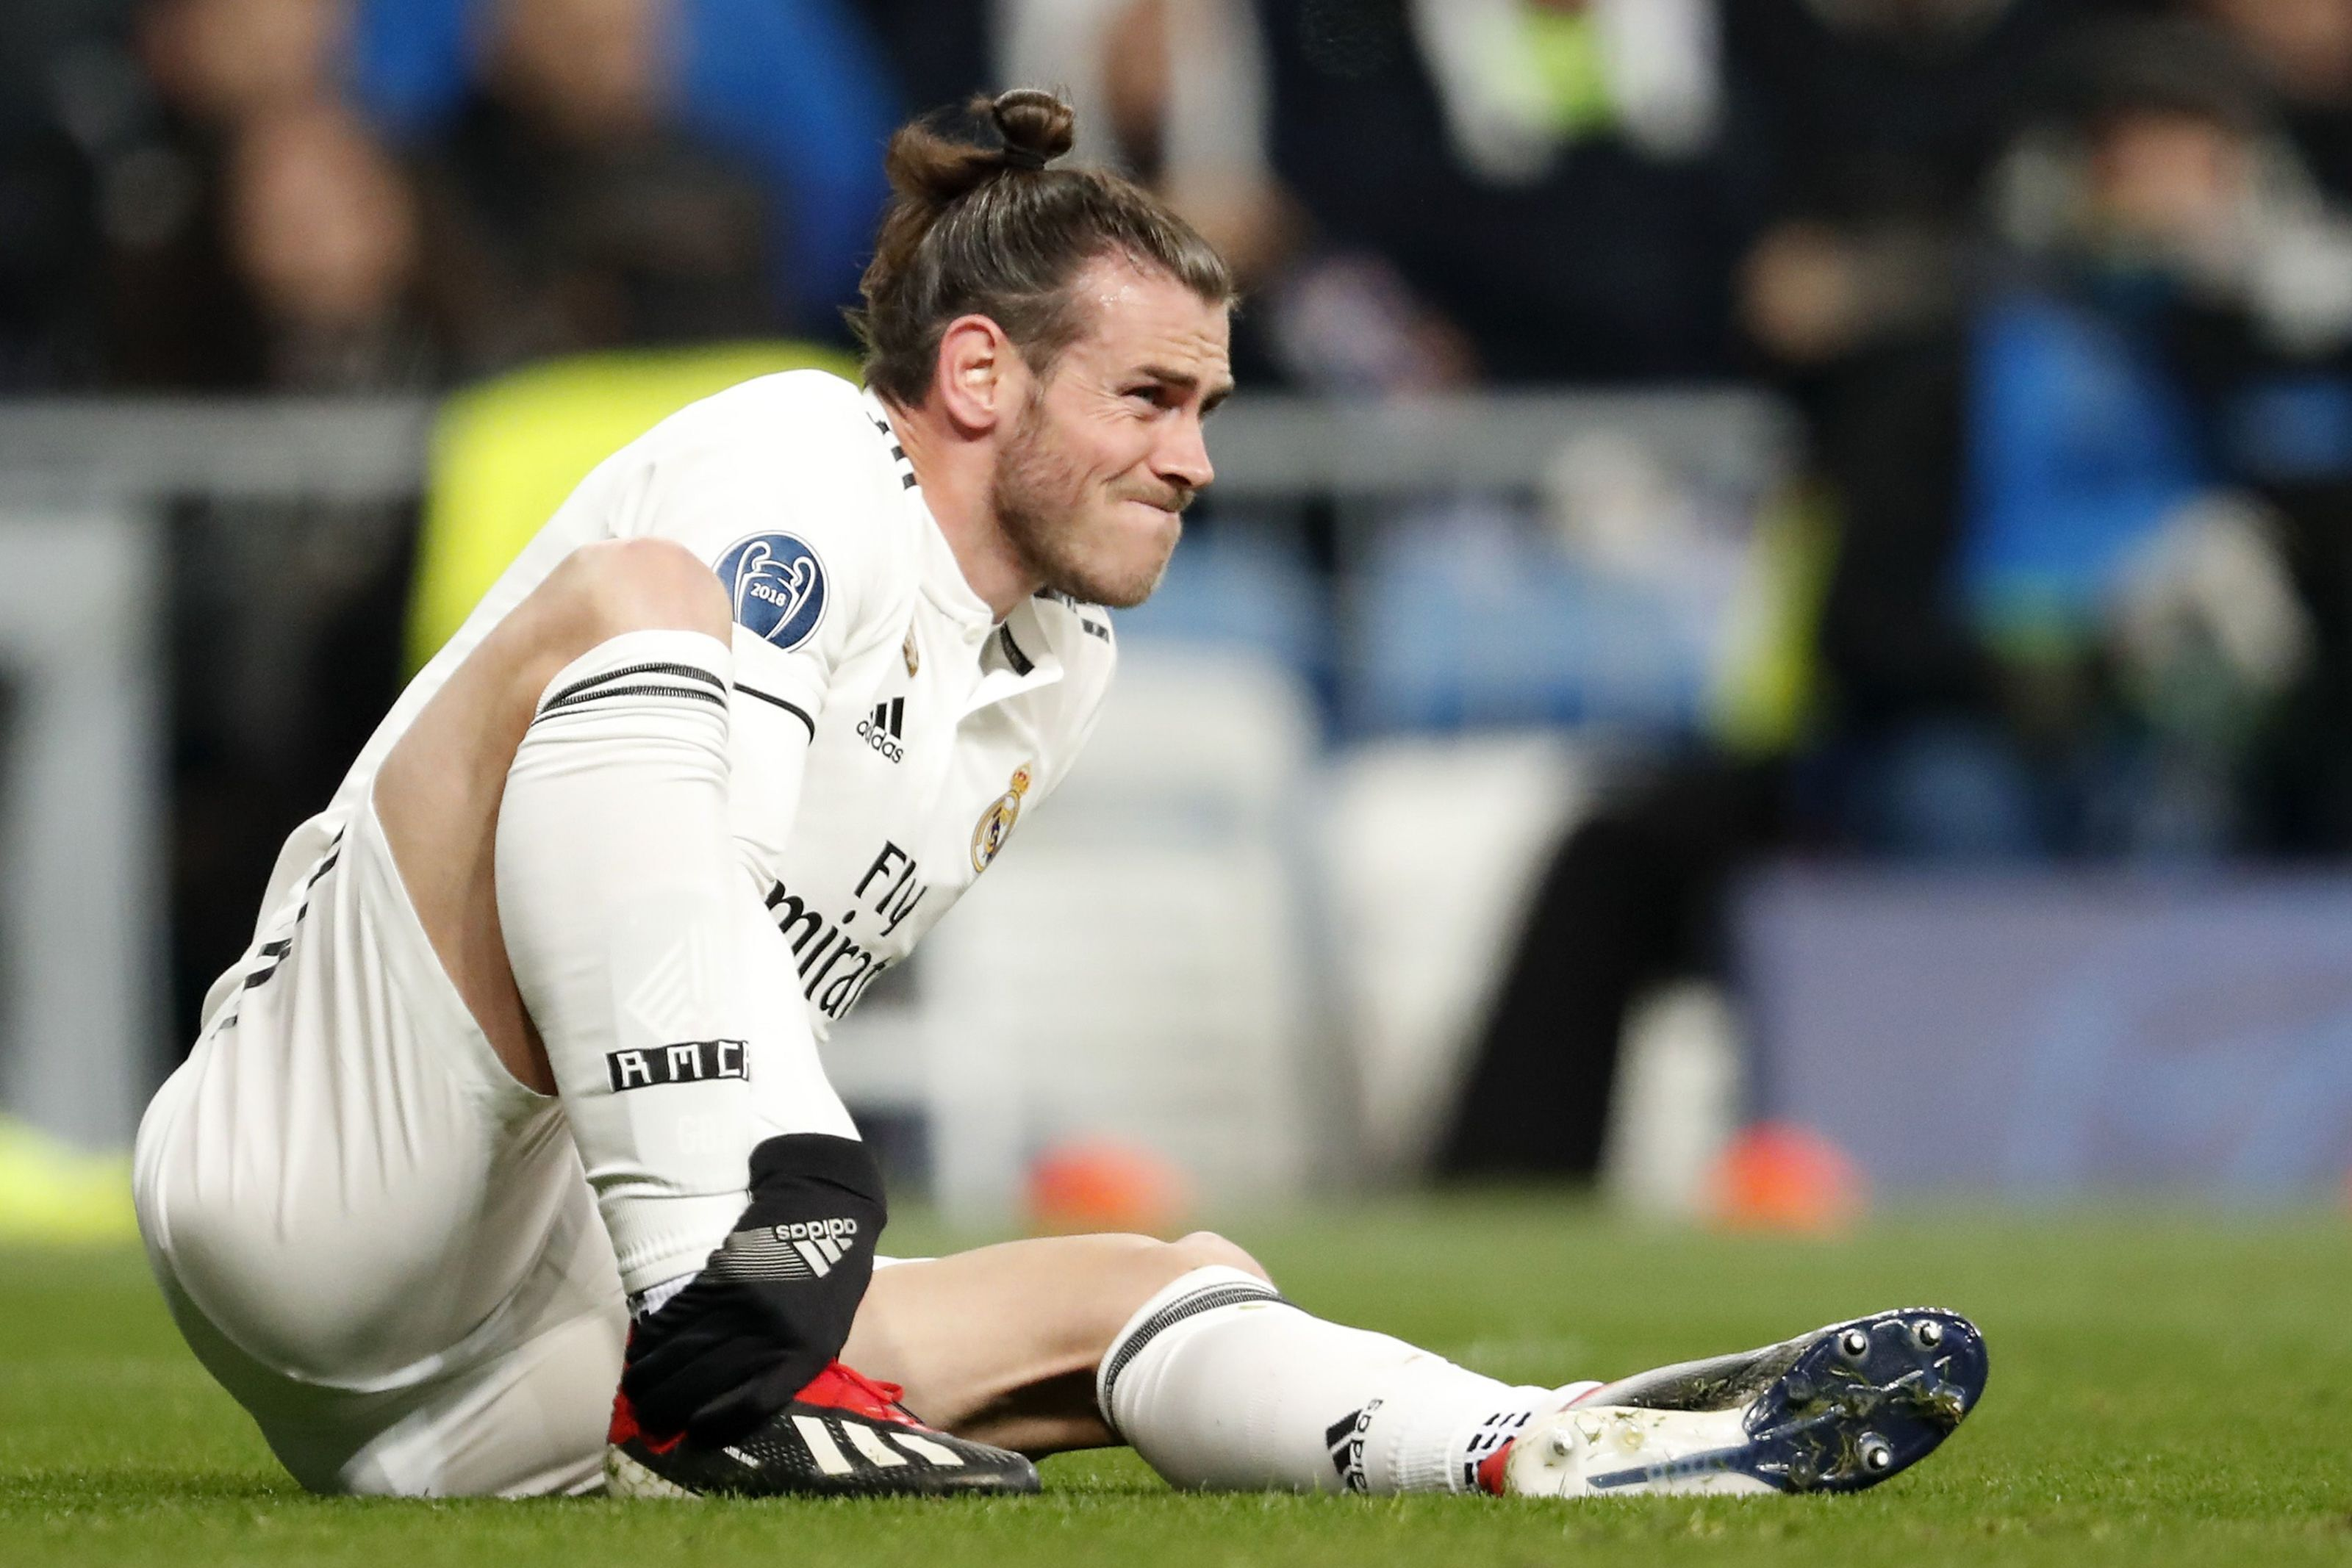 Gareth Bale of Real Madrid during the UEFA Champions League group G match between Real Madrid and CSKA Moskva at the Santiago Bernabeu stadium on December 12, 2018 in Madrid, Spain(Photo by VI Images via Getty Images)